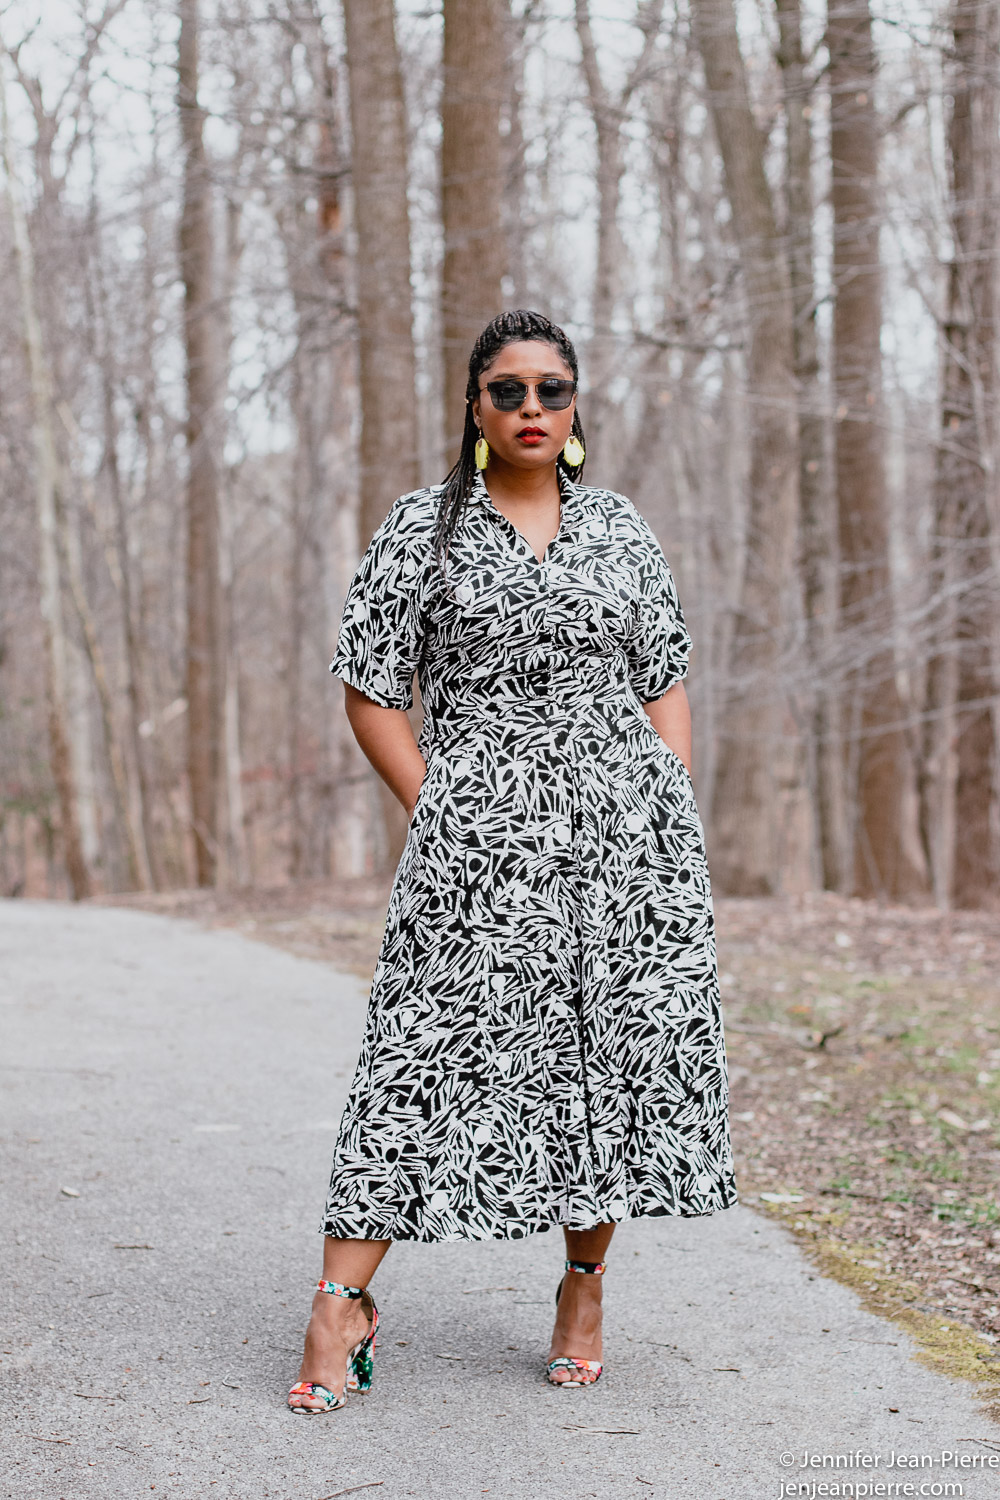 black girl wearing a long black and white print dress from the thrift stores with yellow fringe earrings and hair back in a ponytail with black square glasses and floral black open toe sandals